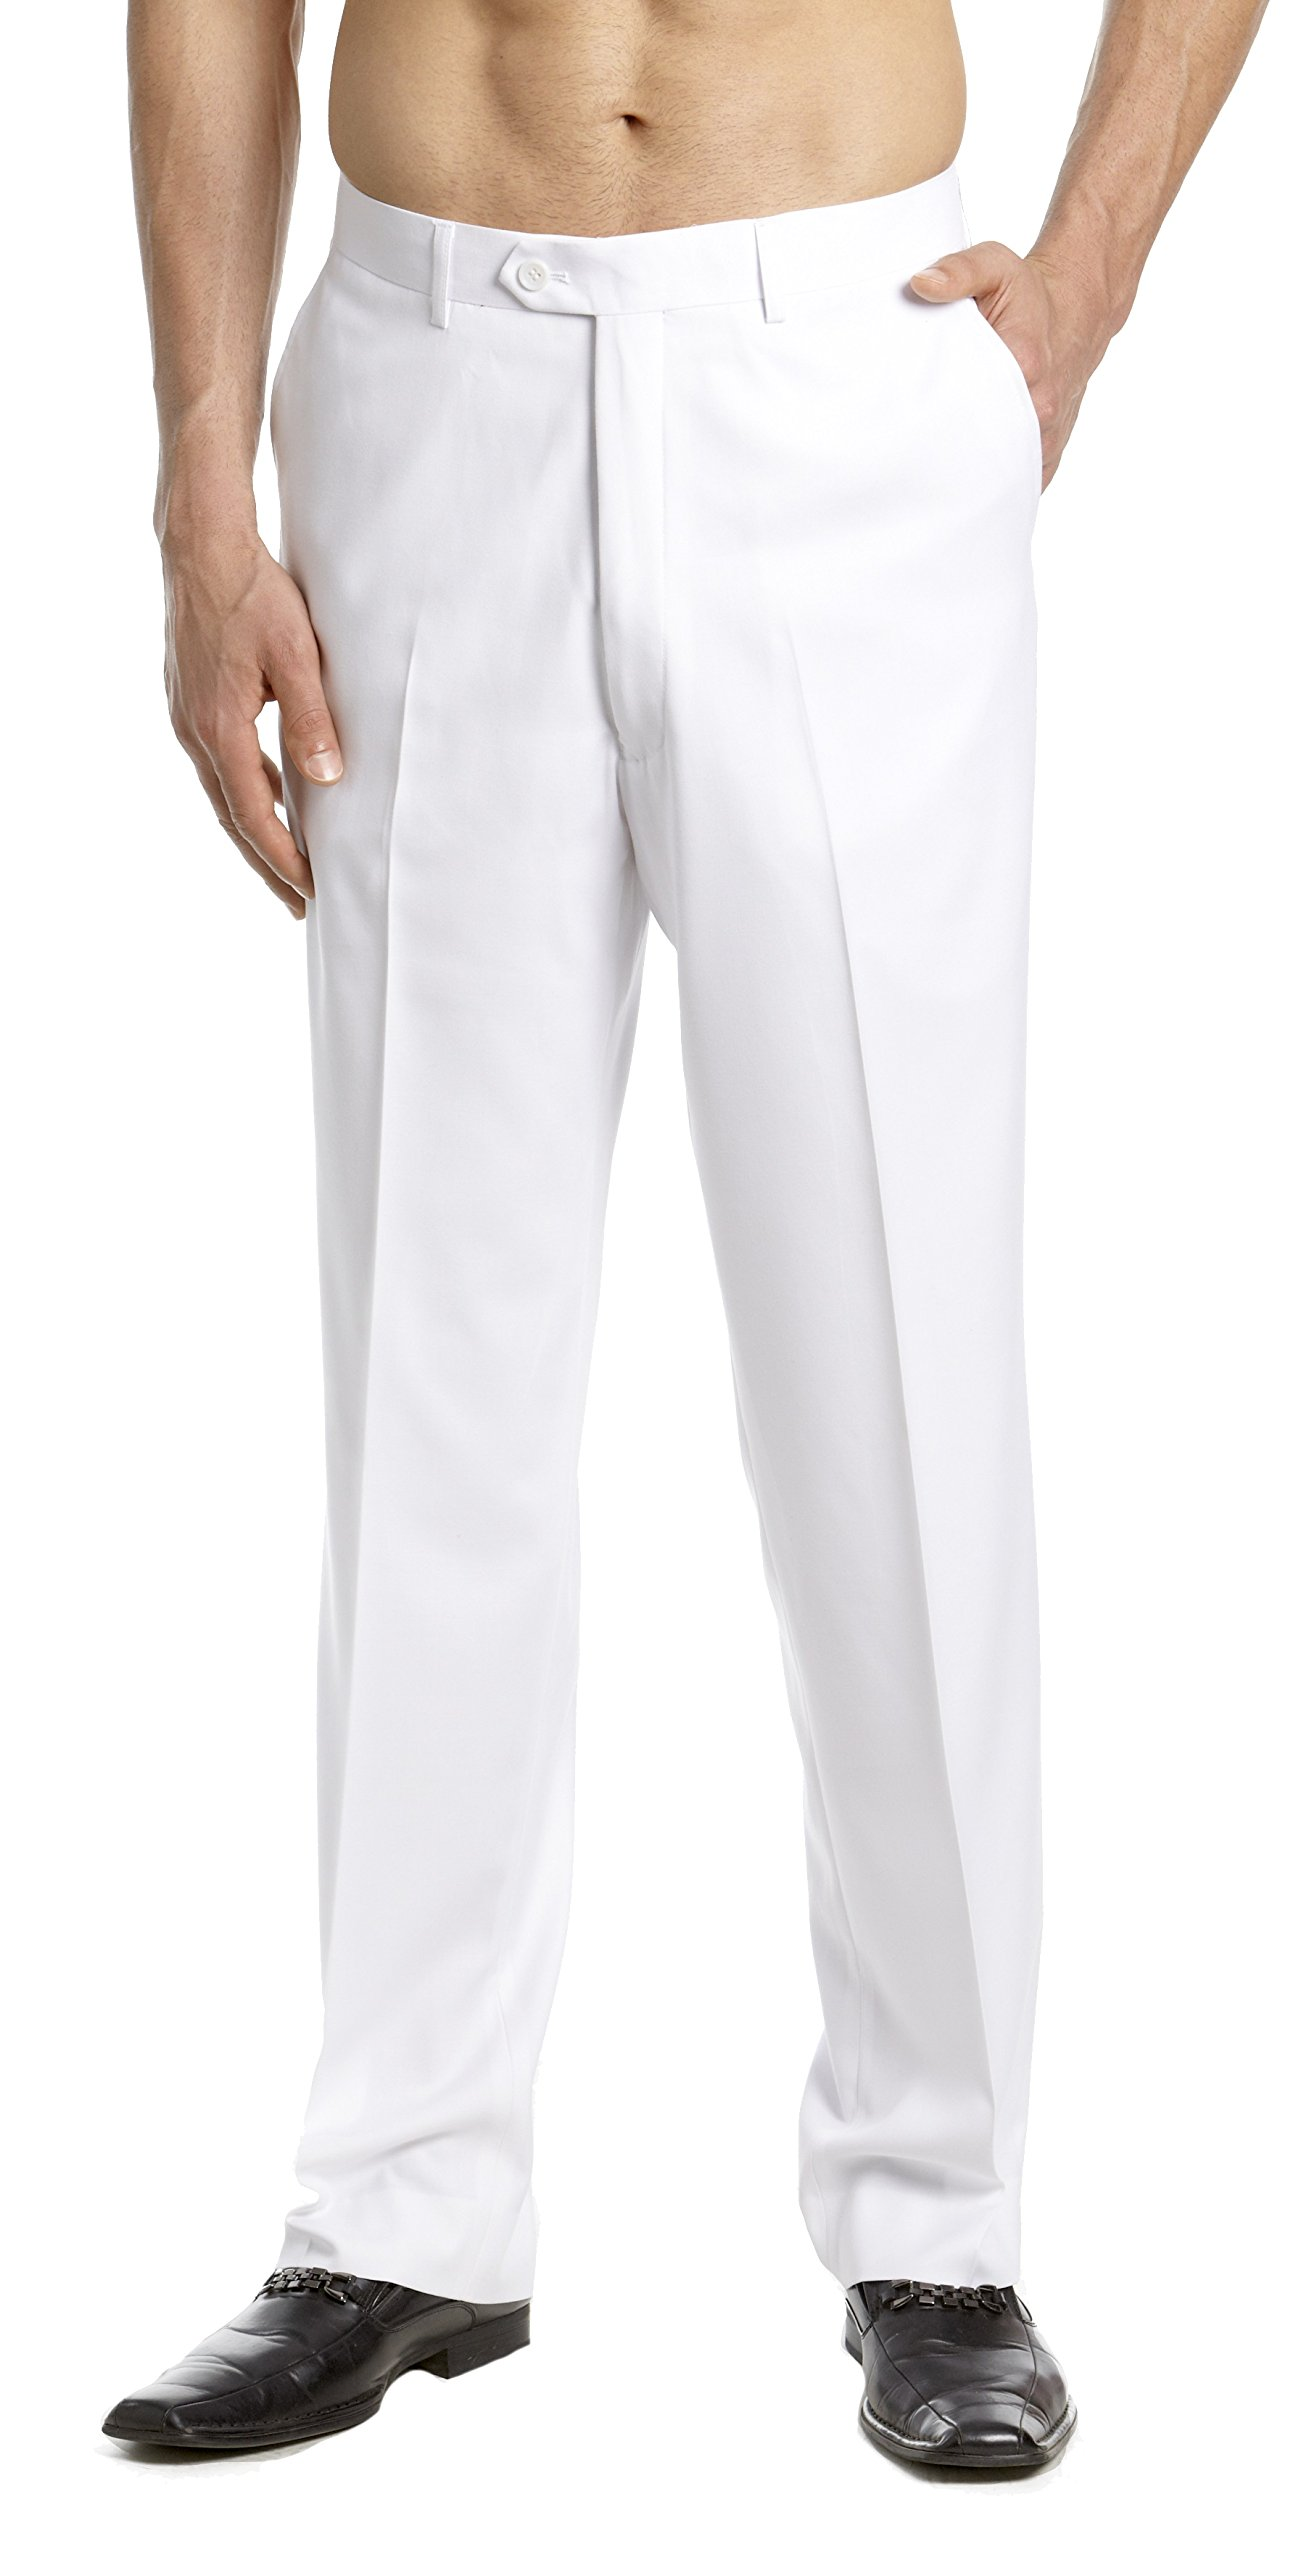 CONCITOR Men's TUXEDO Pants Flat Front with Satin Band Solid WHITE Color 34